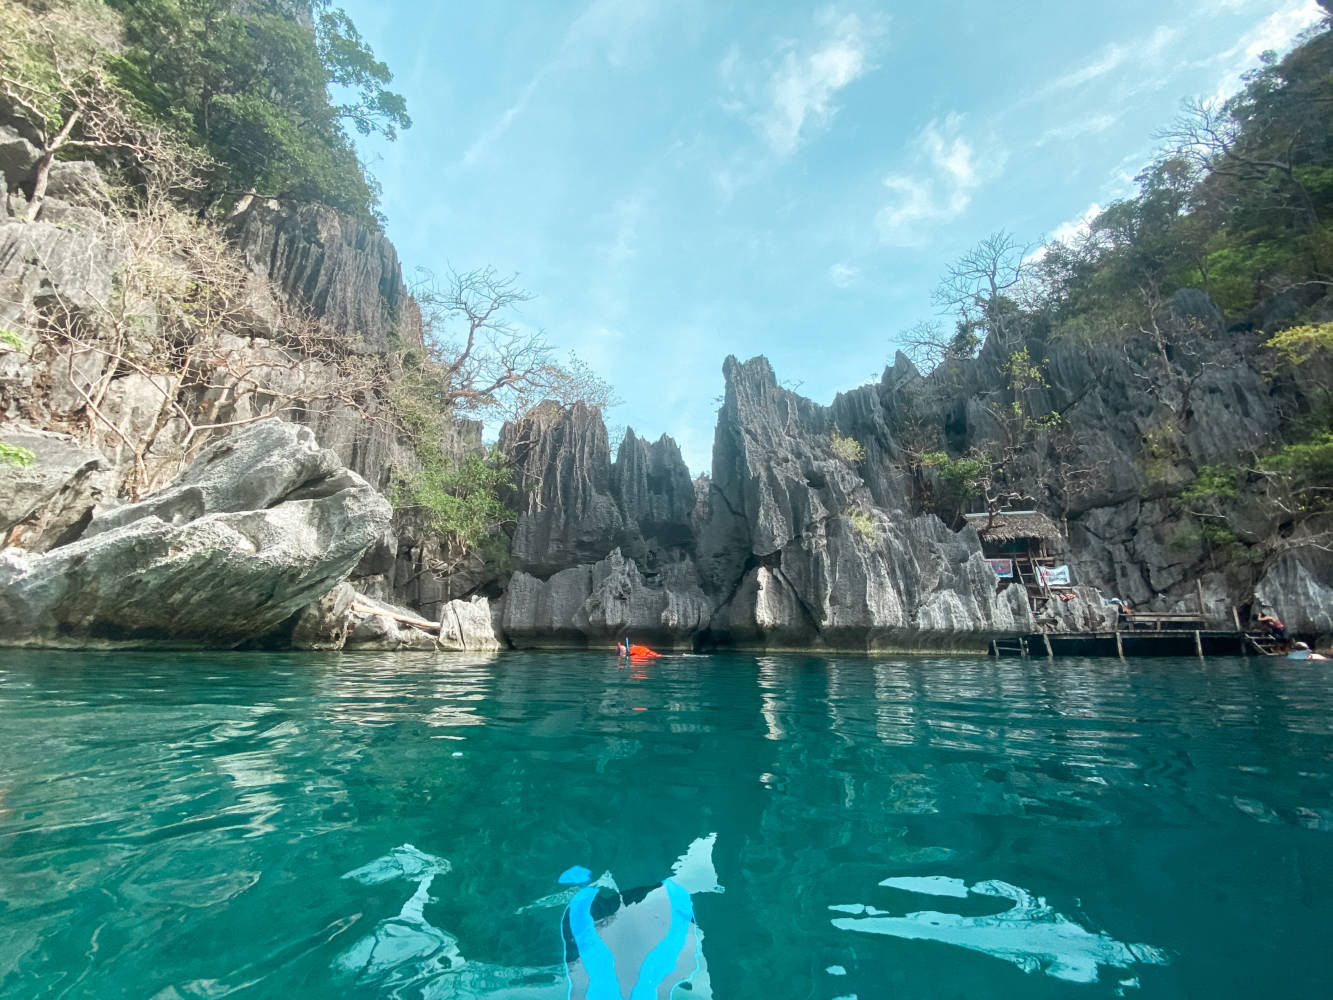 Barracuda Lake Coron, Philippines #barracudalake #coron #palawan